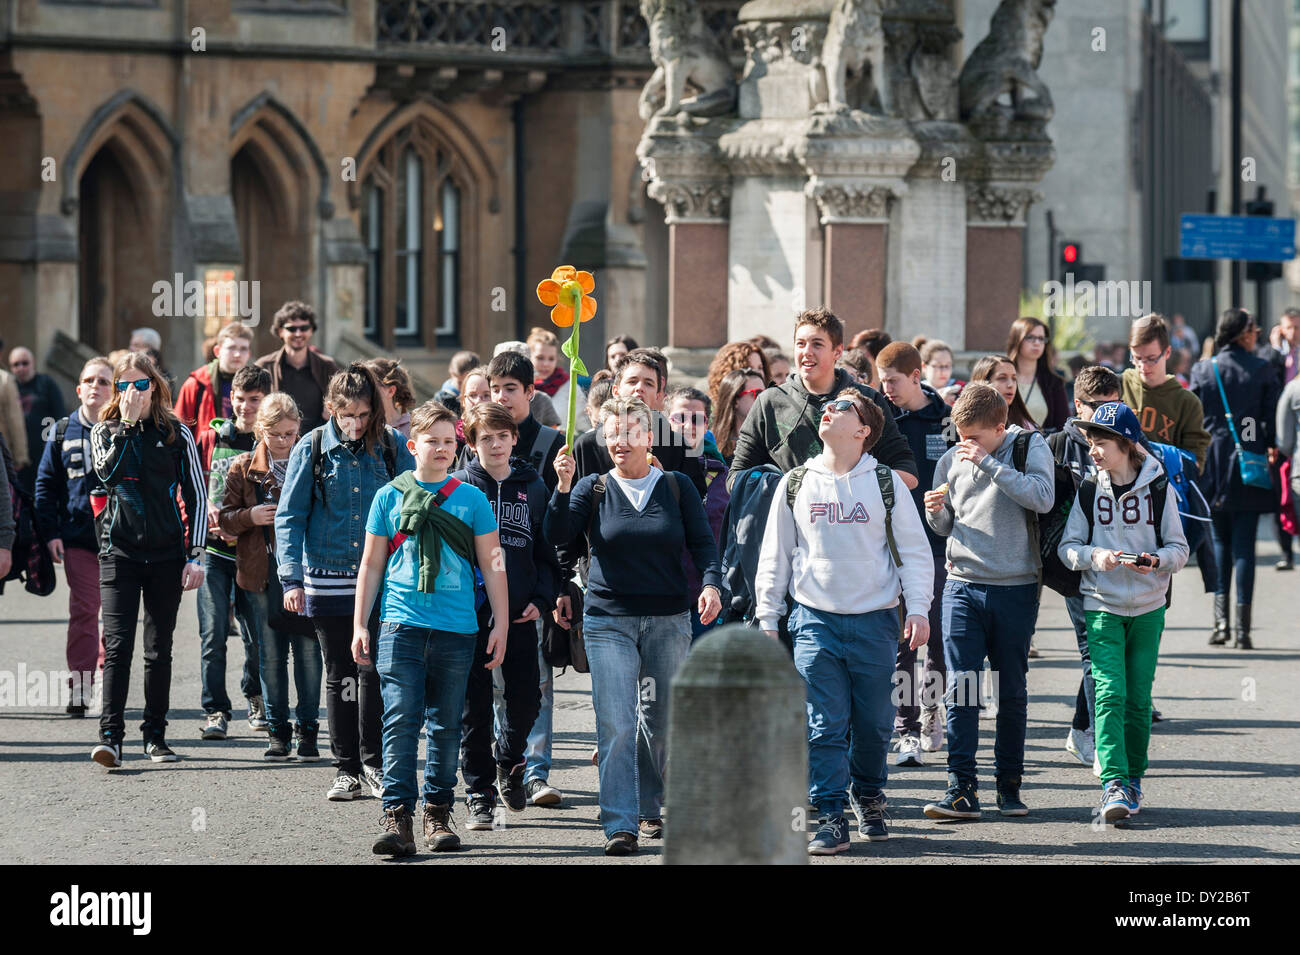 A group of young tourists and their guide in London. - Stock Image